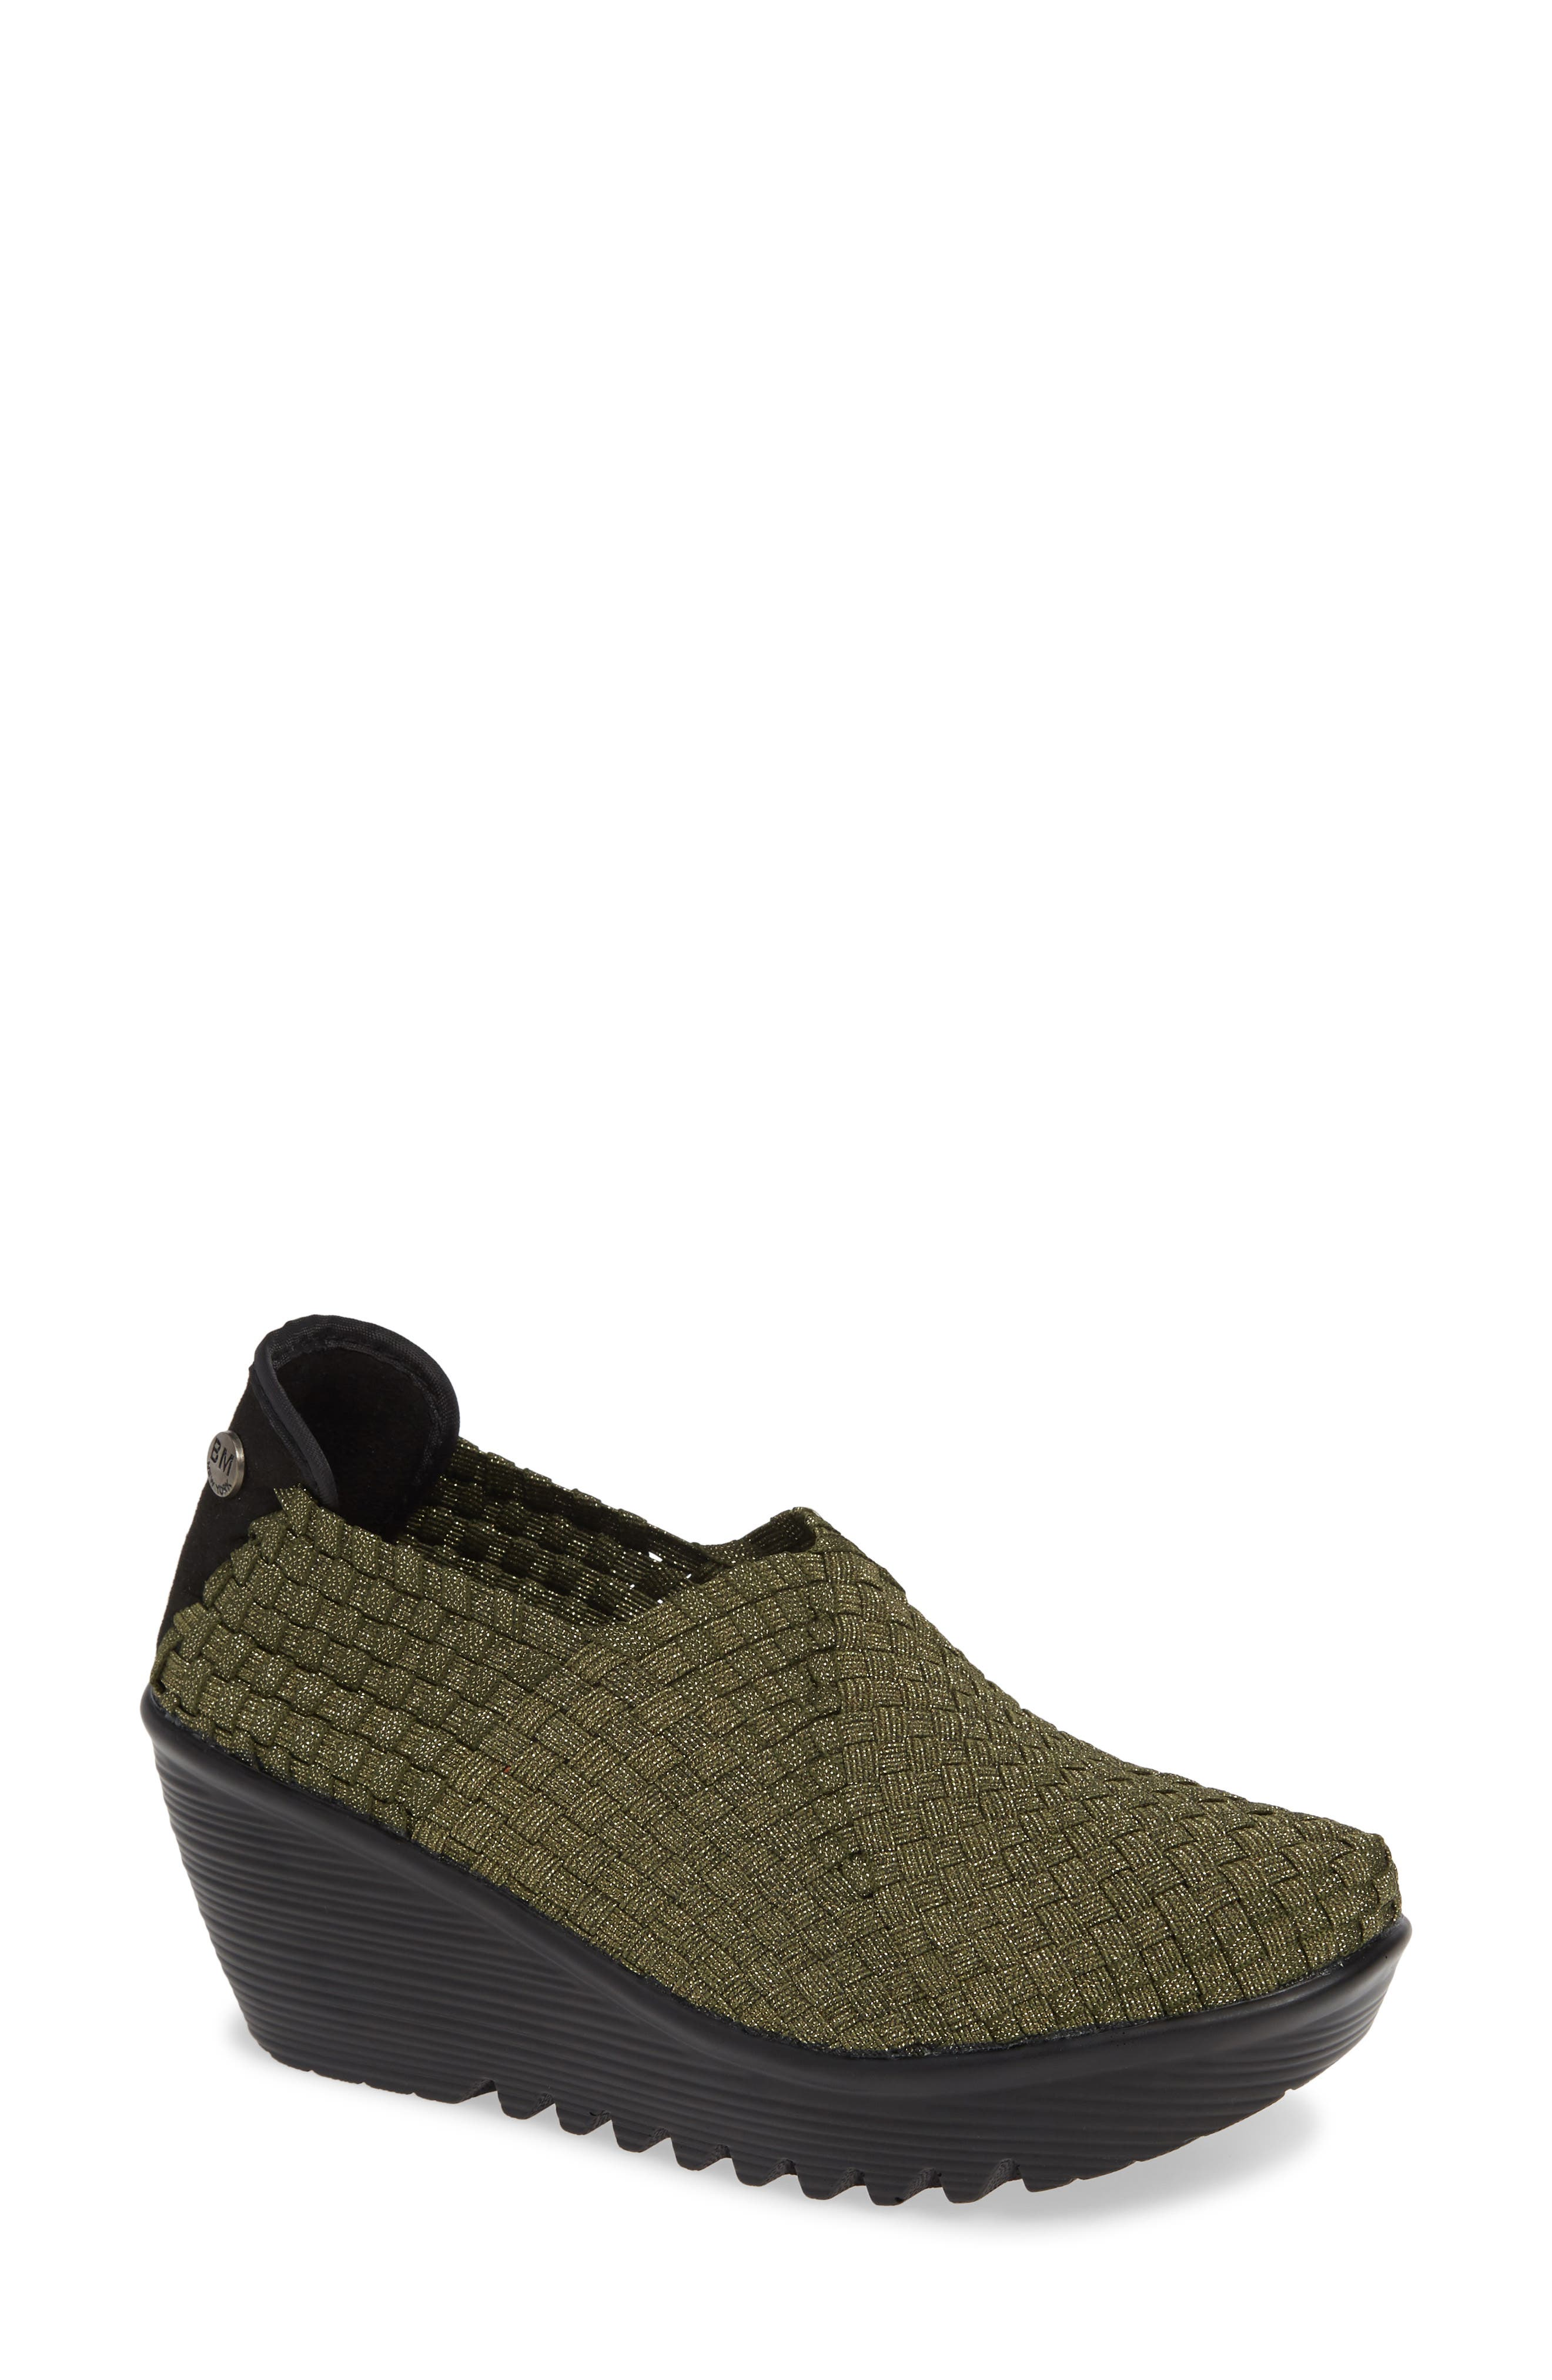 'Gem' Wedge,                             Main thumbnail 1, color,                             OLIVE SHIMMER FABRIC